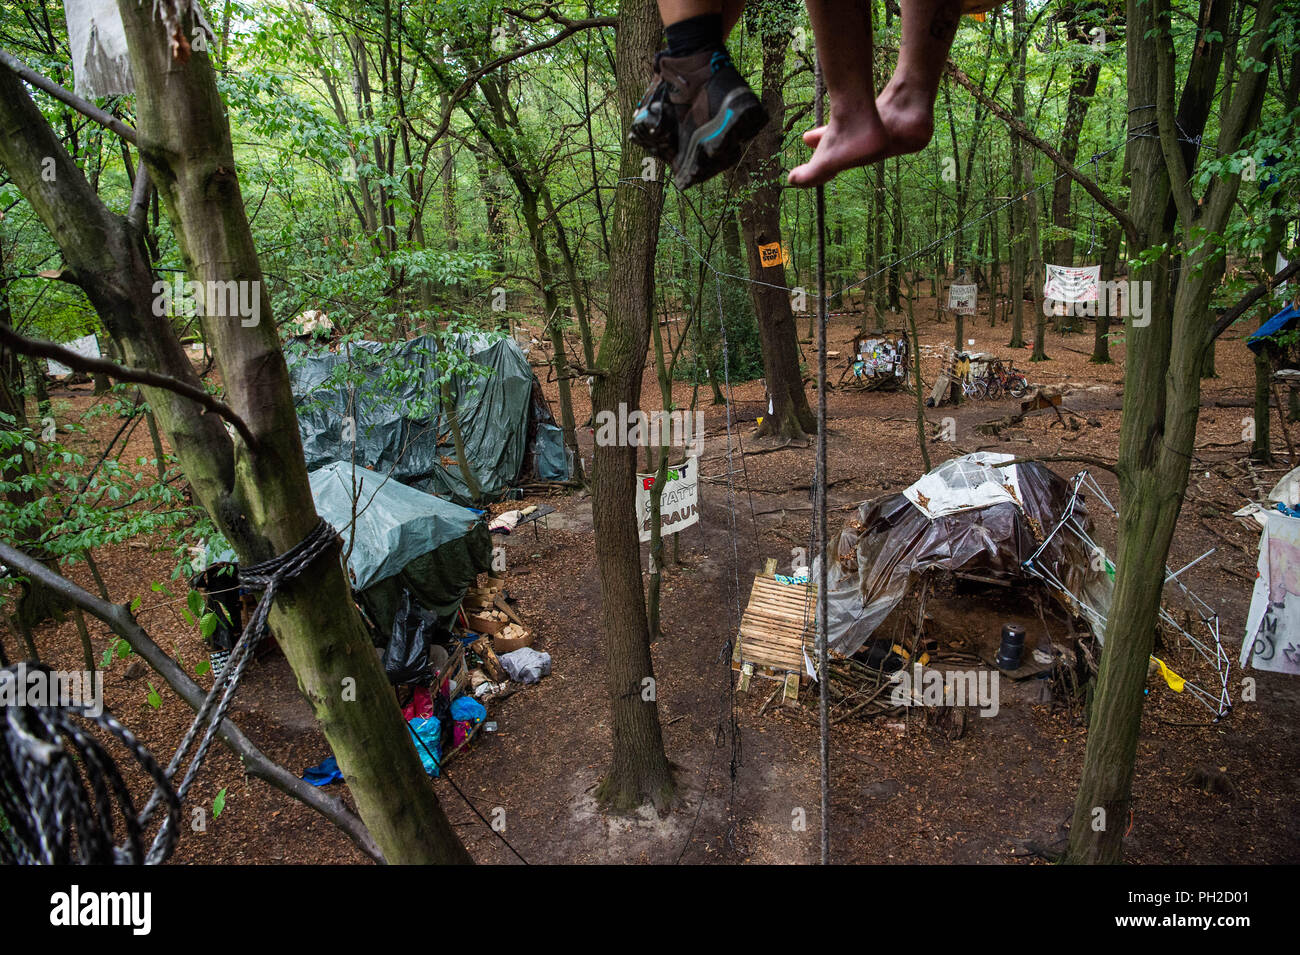 Germany, Morschenich. 29th Aug, 2018. Two activists sit on a tree house in the Hambach Forest. The camp will demonstrate against the clearing of the Hambach forest for opencast lignite mining. North Rhine-Westphalia's Prime Minister Laschet (CDU) will be asking the press questions on current political issues on 30.09.2018. In the centre is probably the heated location in the Hambach Forest. Credit: Christophe Gateau/dpa/Alamy Live News - Stock Image